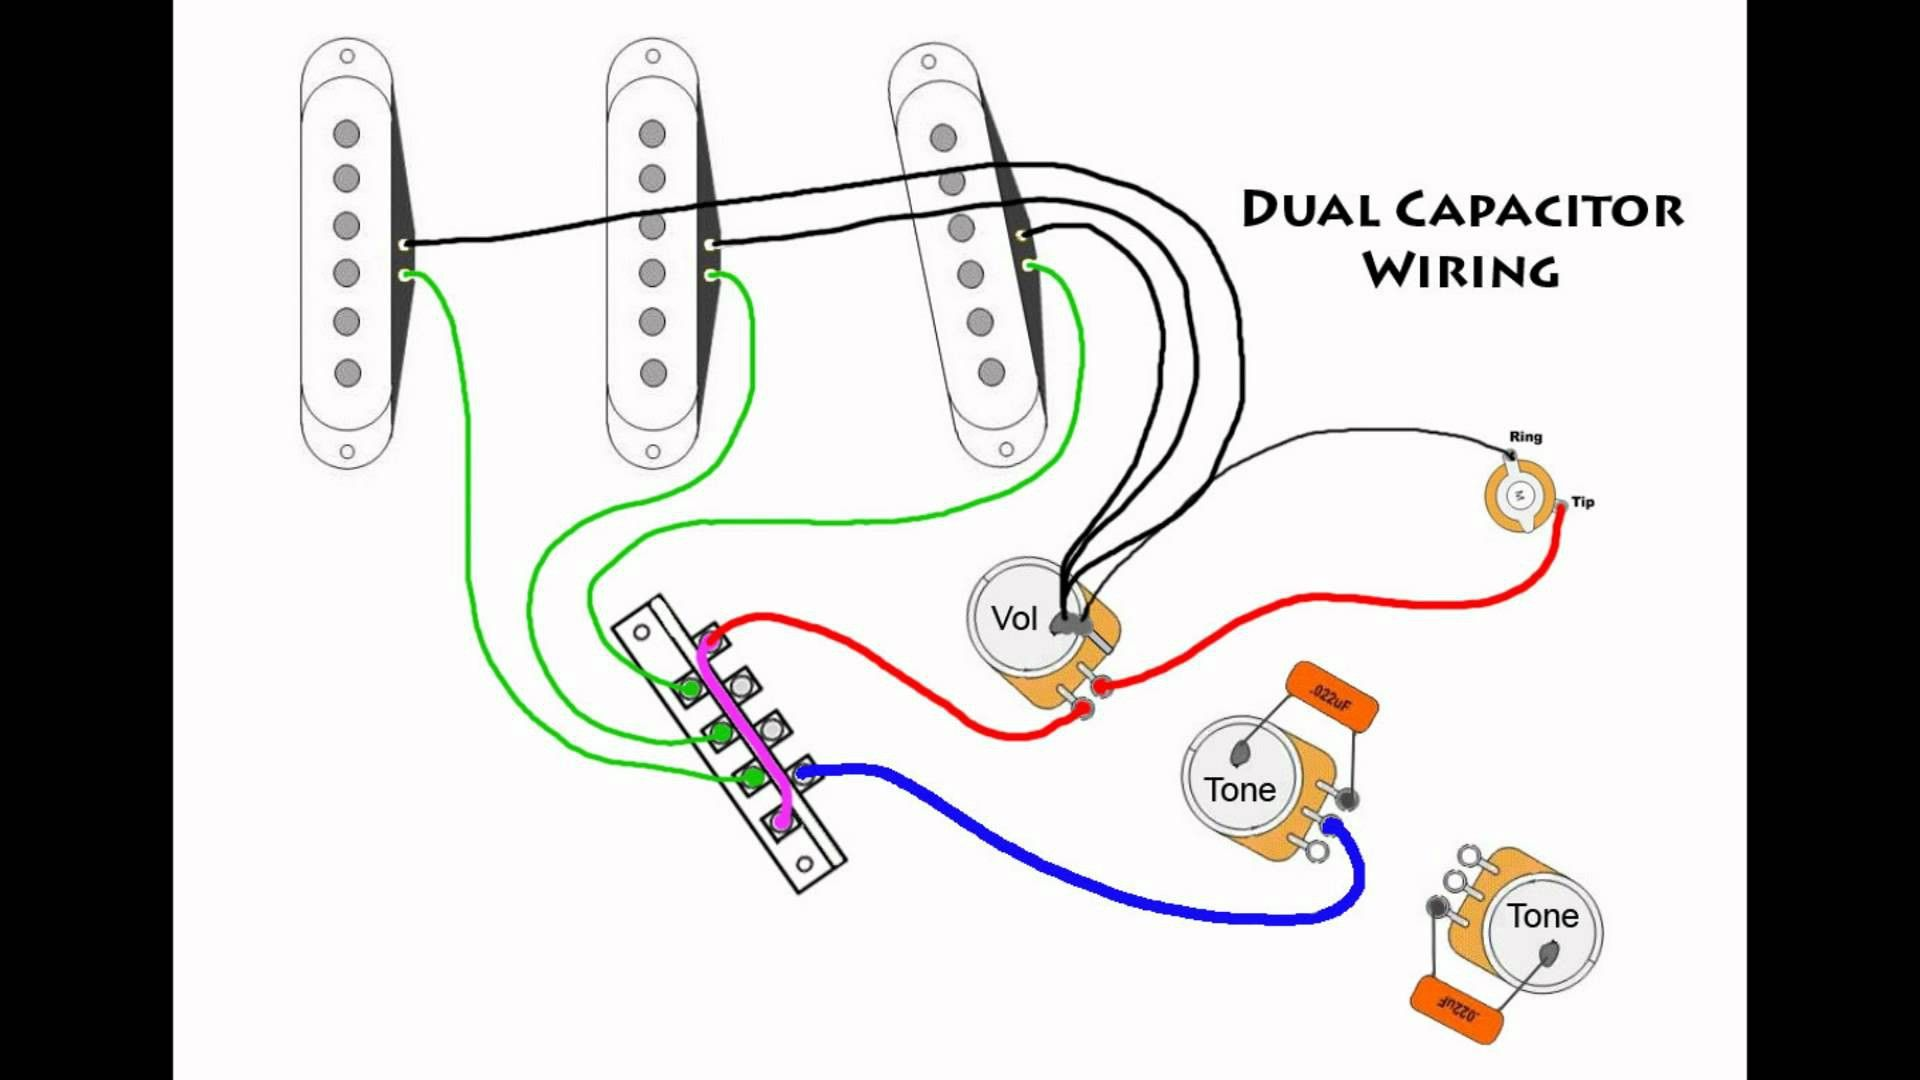 fender stratocaster wiring diagram best of strat throughout diagrams